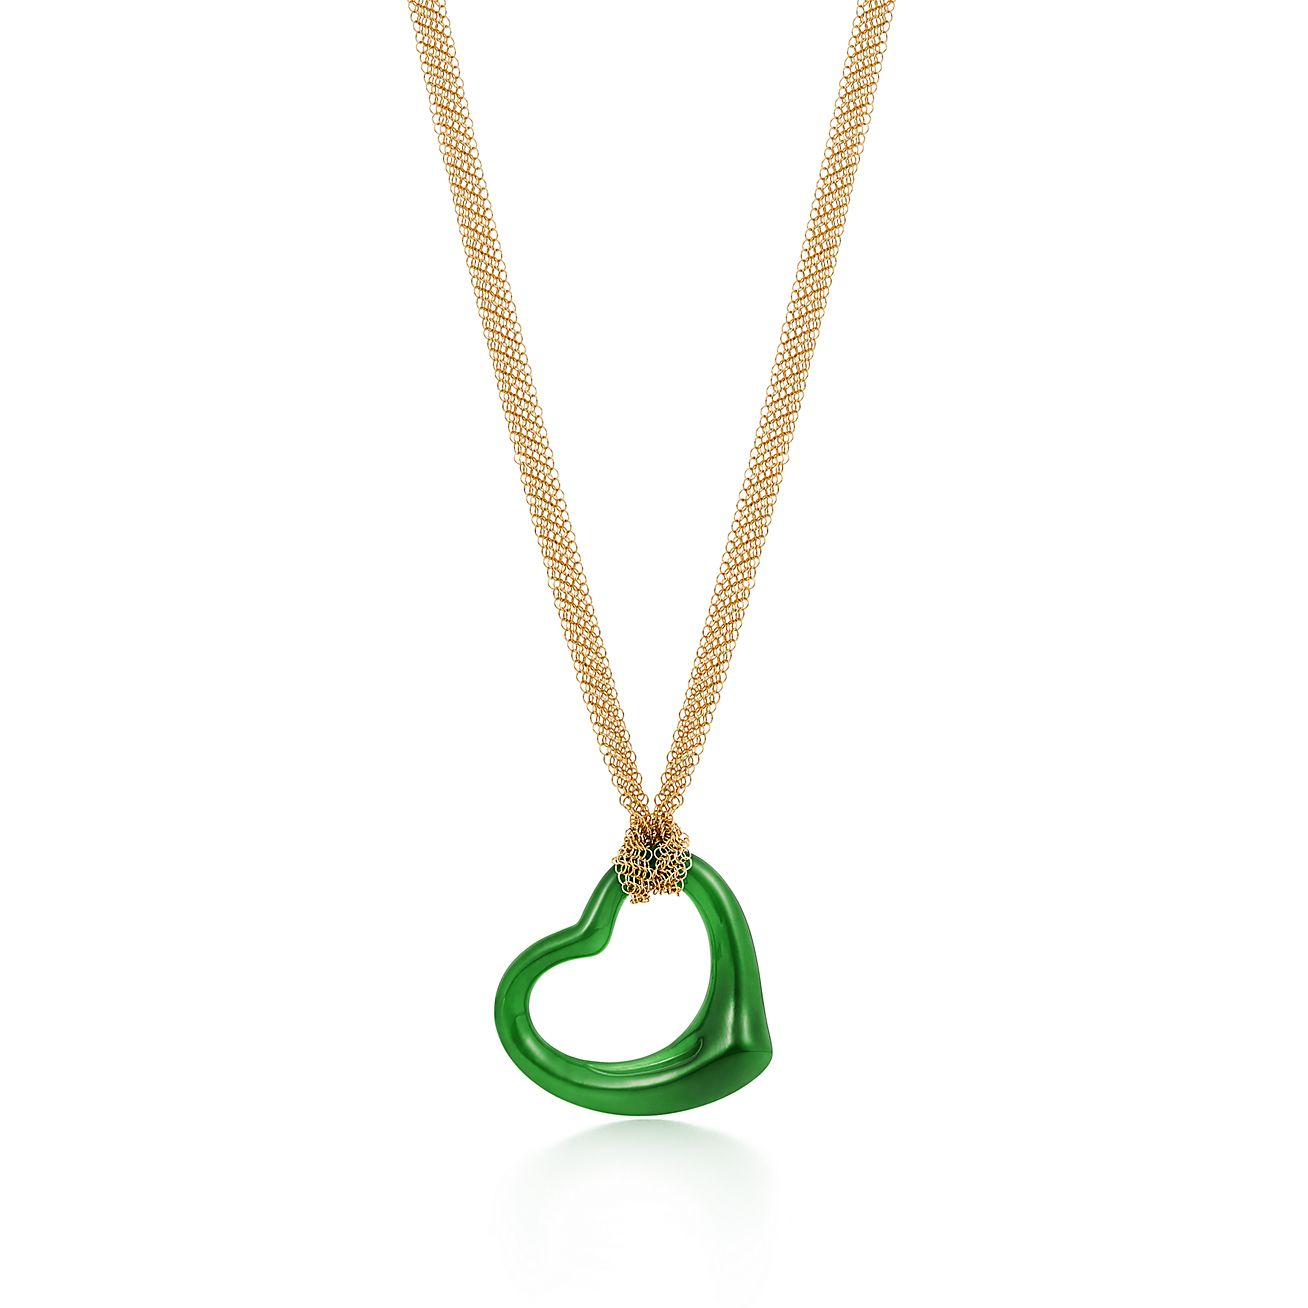 id green ed necklace constrain jewelry snake pendants peretti hei fit elsa pendant necklaces with in tiffany wid gold fmt co jade